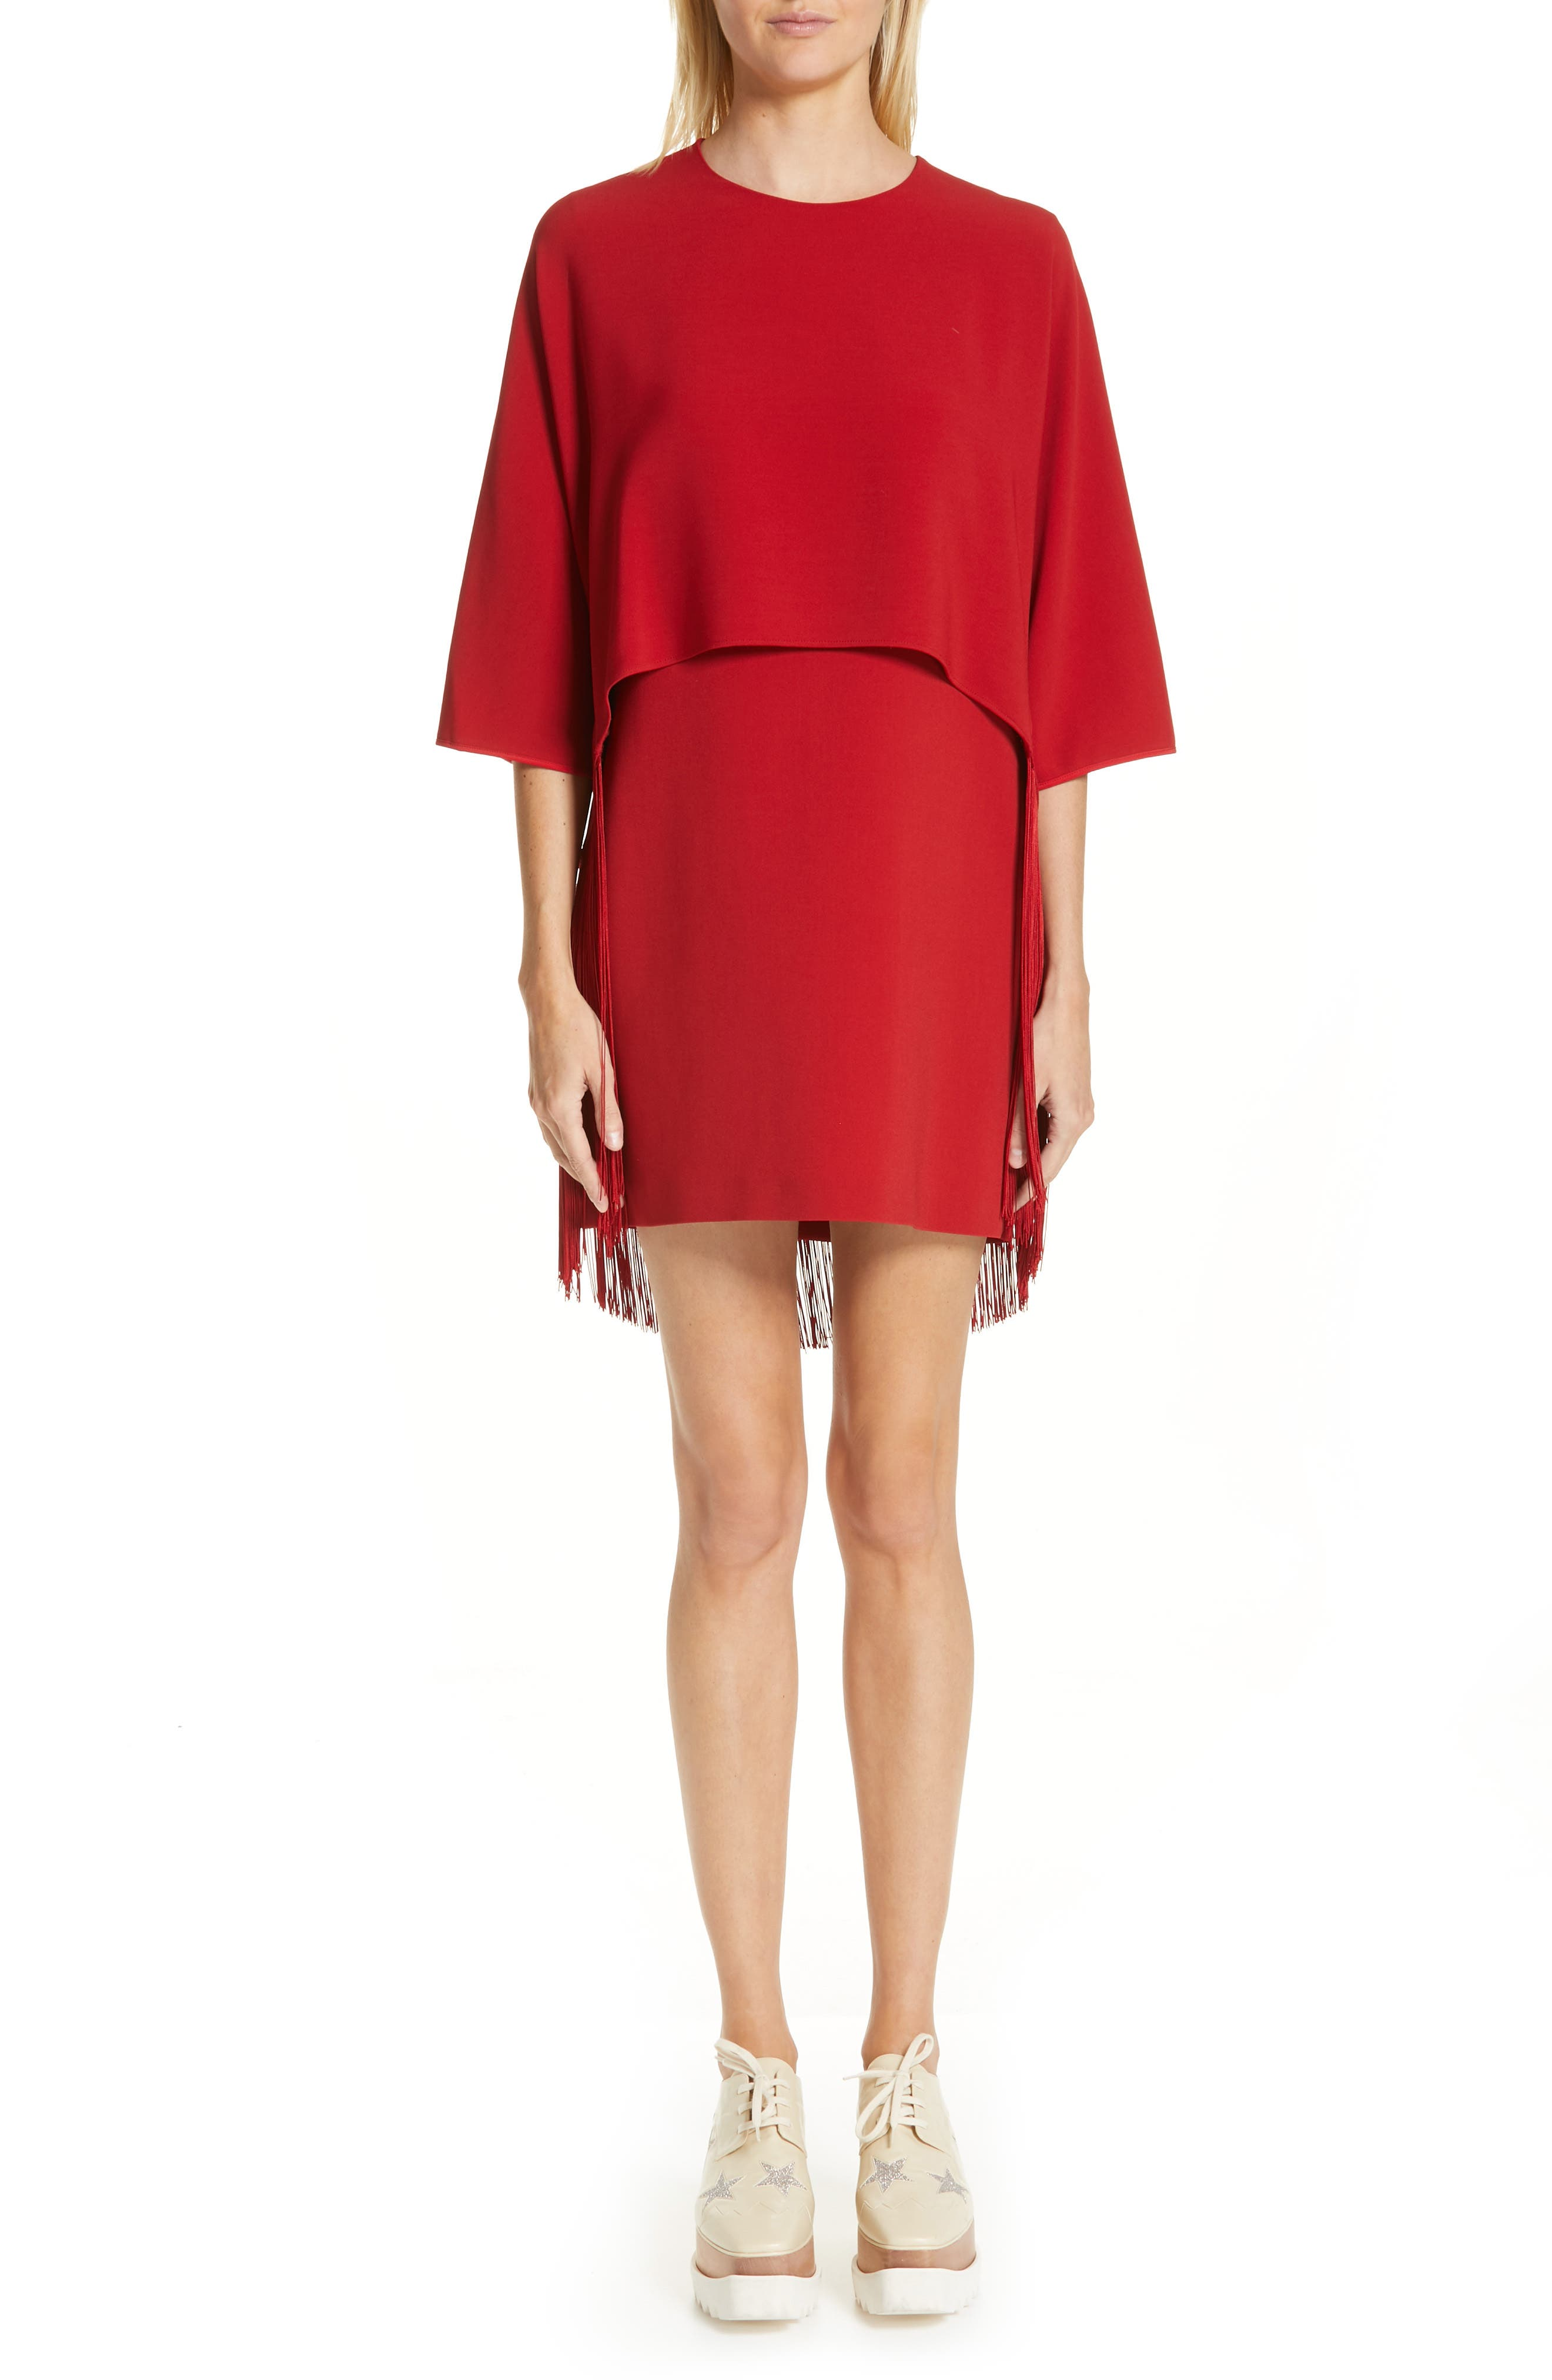 Stella Mccartney Fringe Overlay Stretch Cady Dress, US / 46 IT - Red